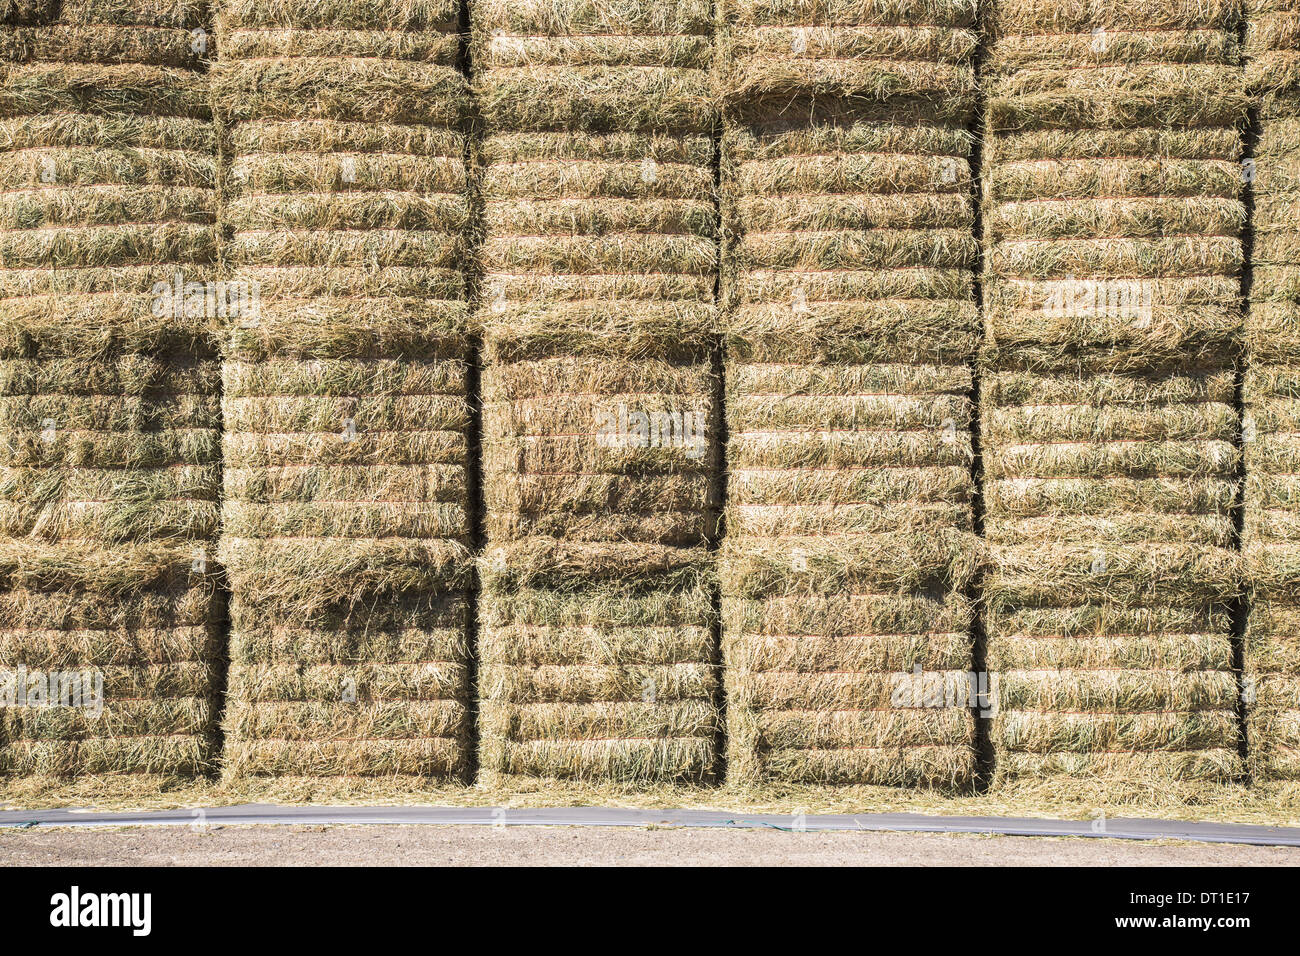 Washington State USA hay bales stored in layers to keep fodder dry - Stock Image